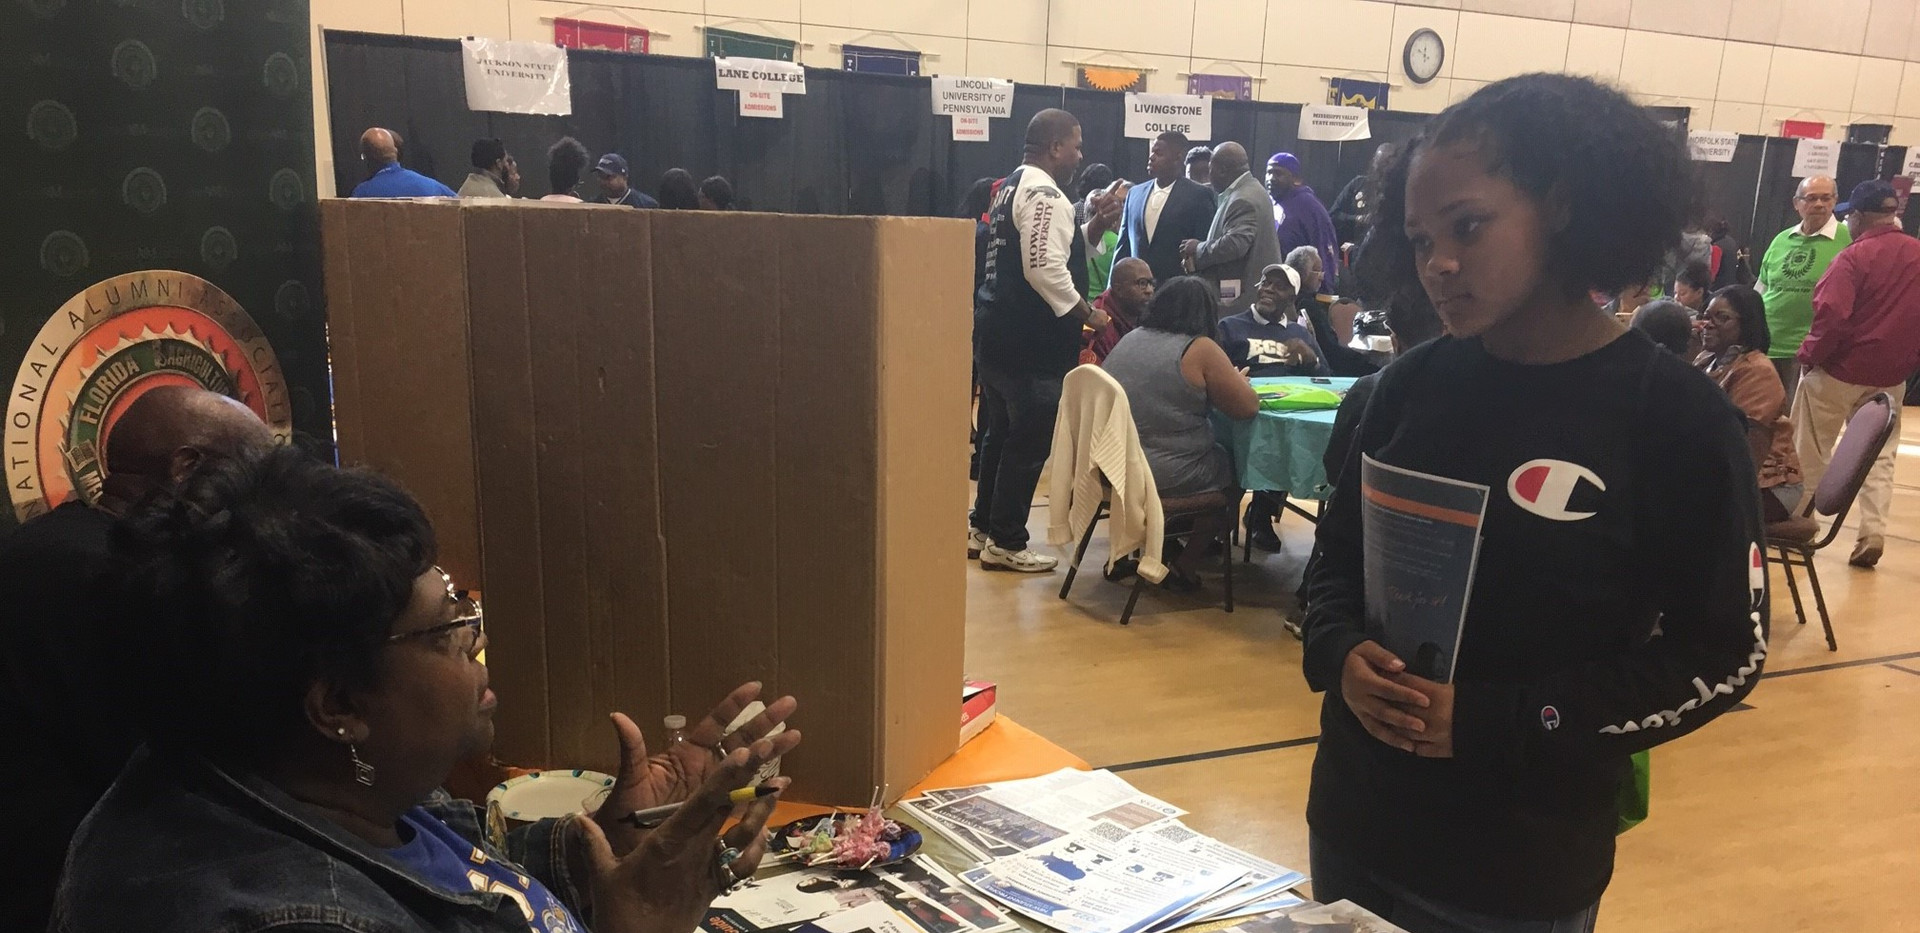 HBCU College Fair at Mt. Calvary Baptist Church (November 3, 2018)